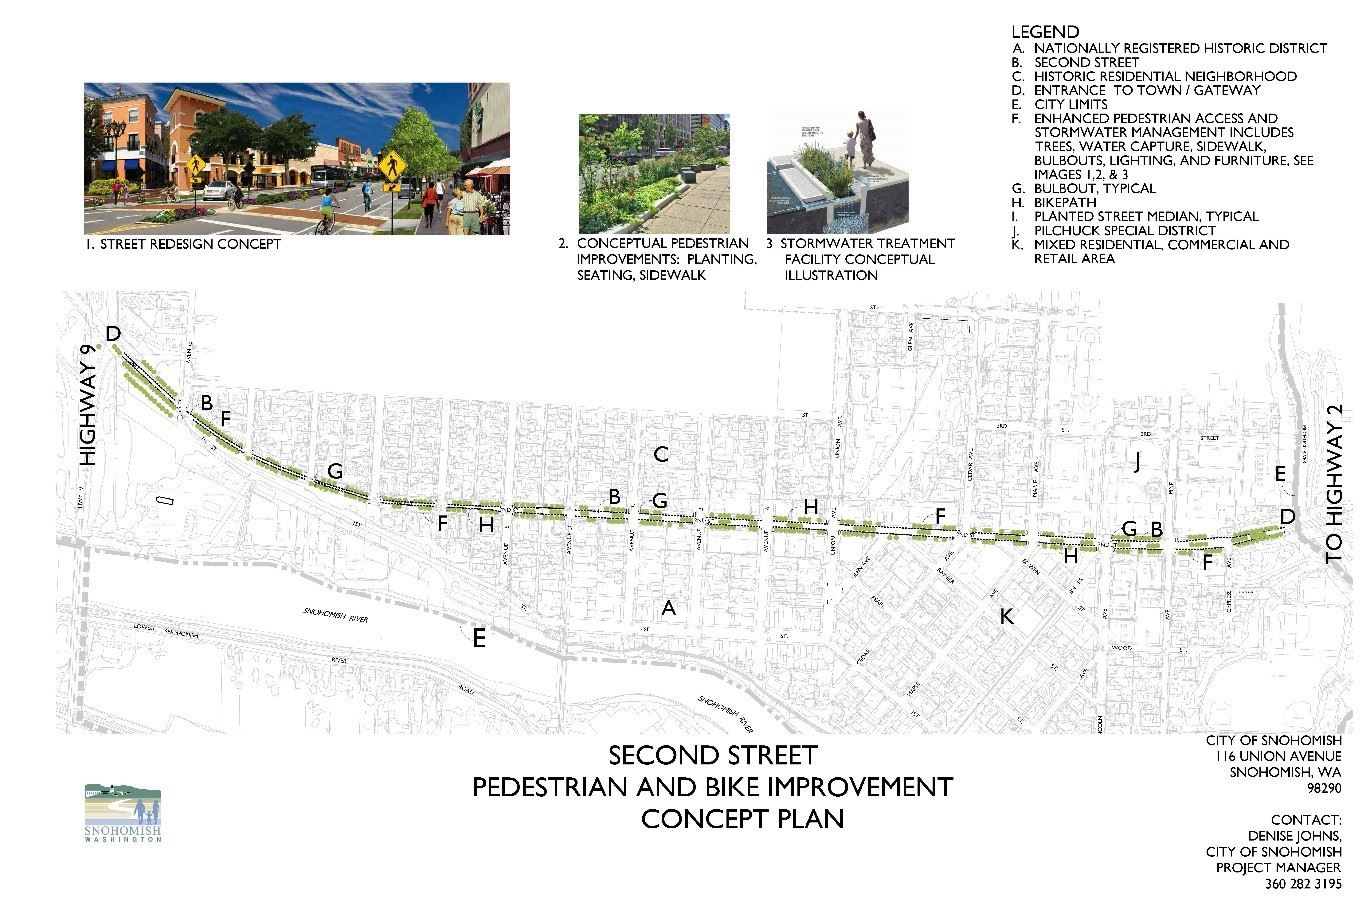 Second street pedestrian and bike improvement plan